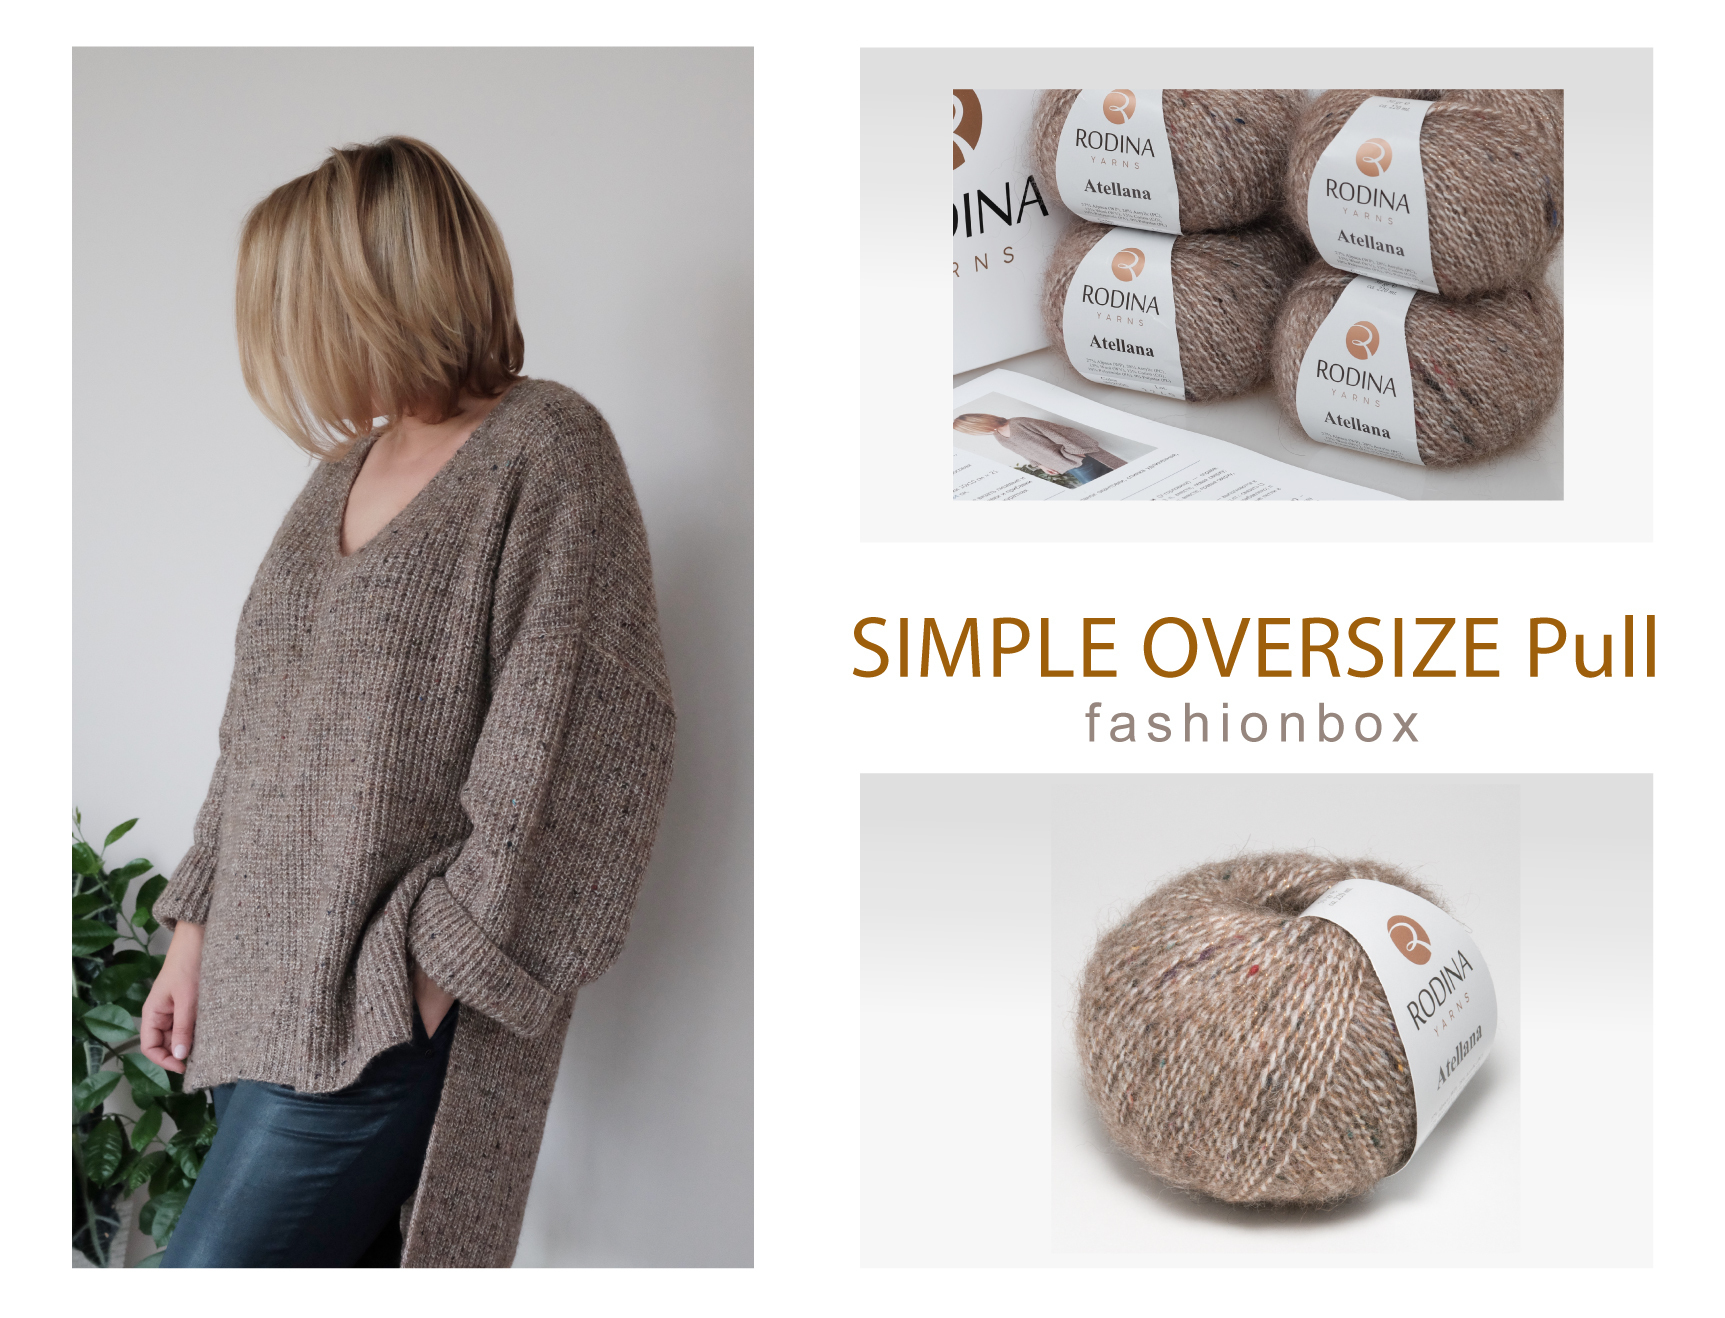 SIMPLE OVERSIZE Pullover Fashionbox